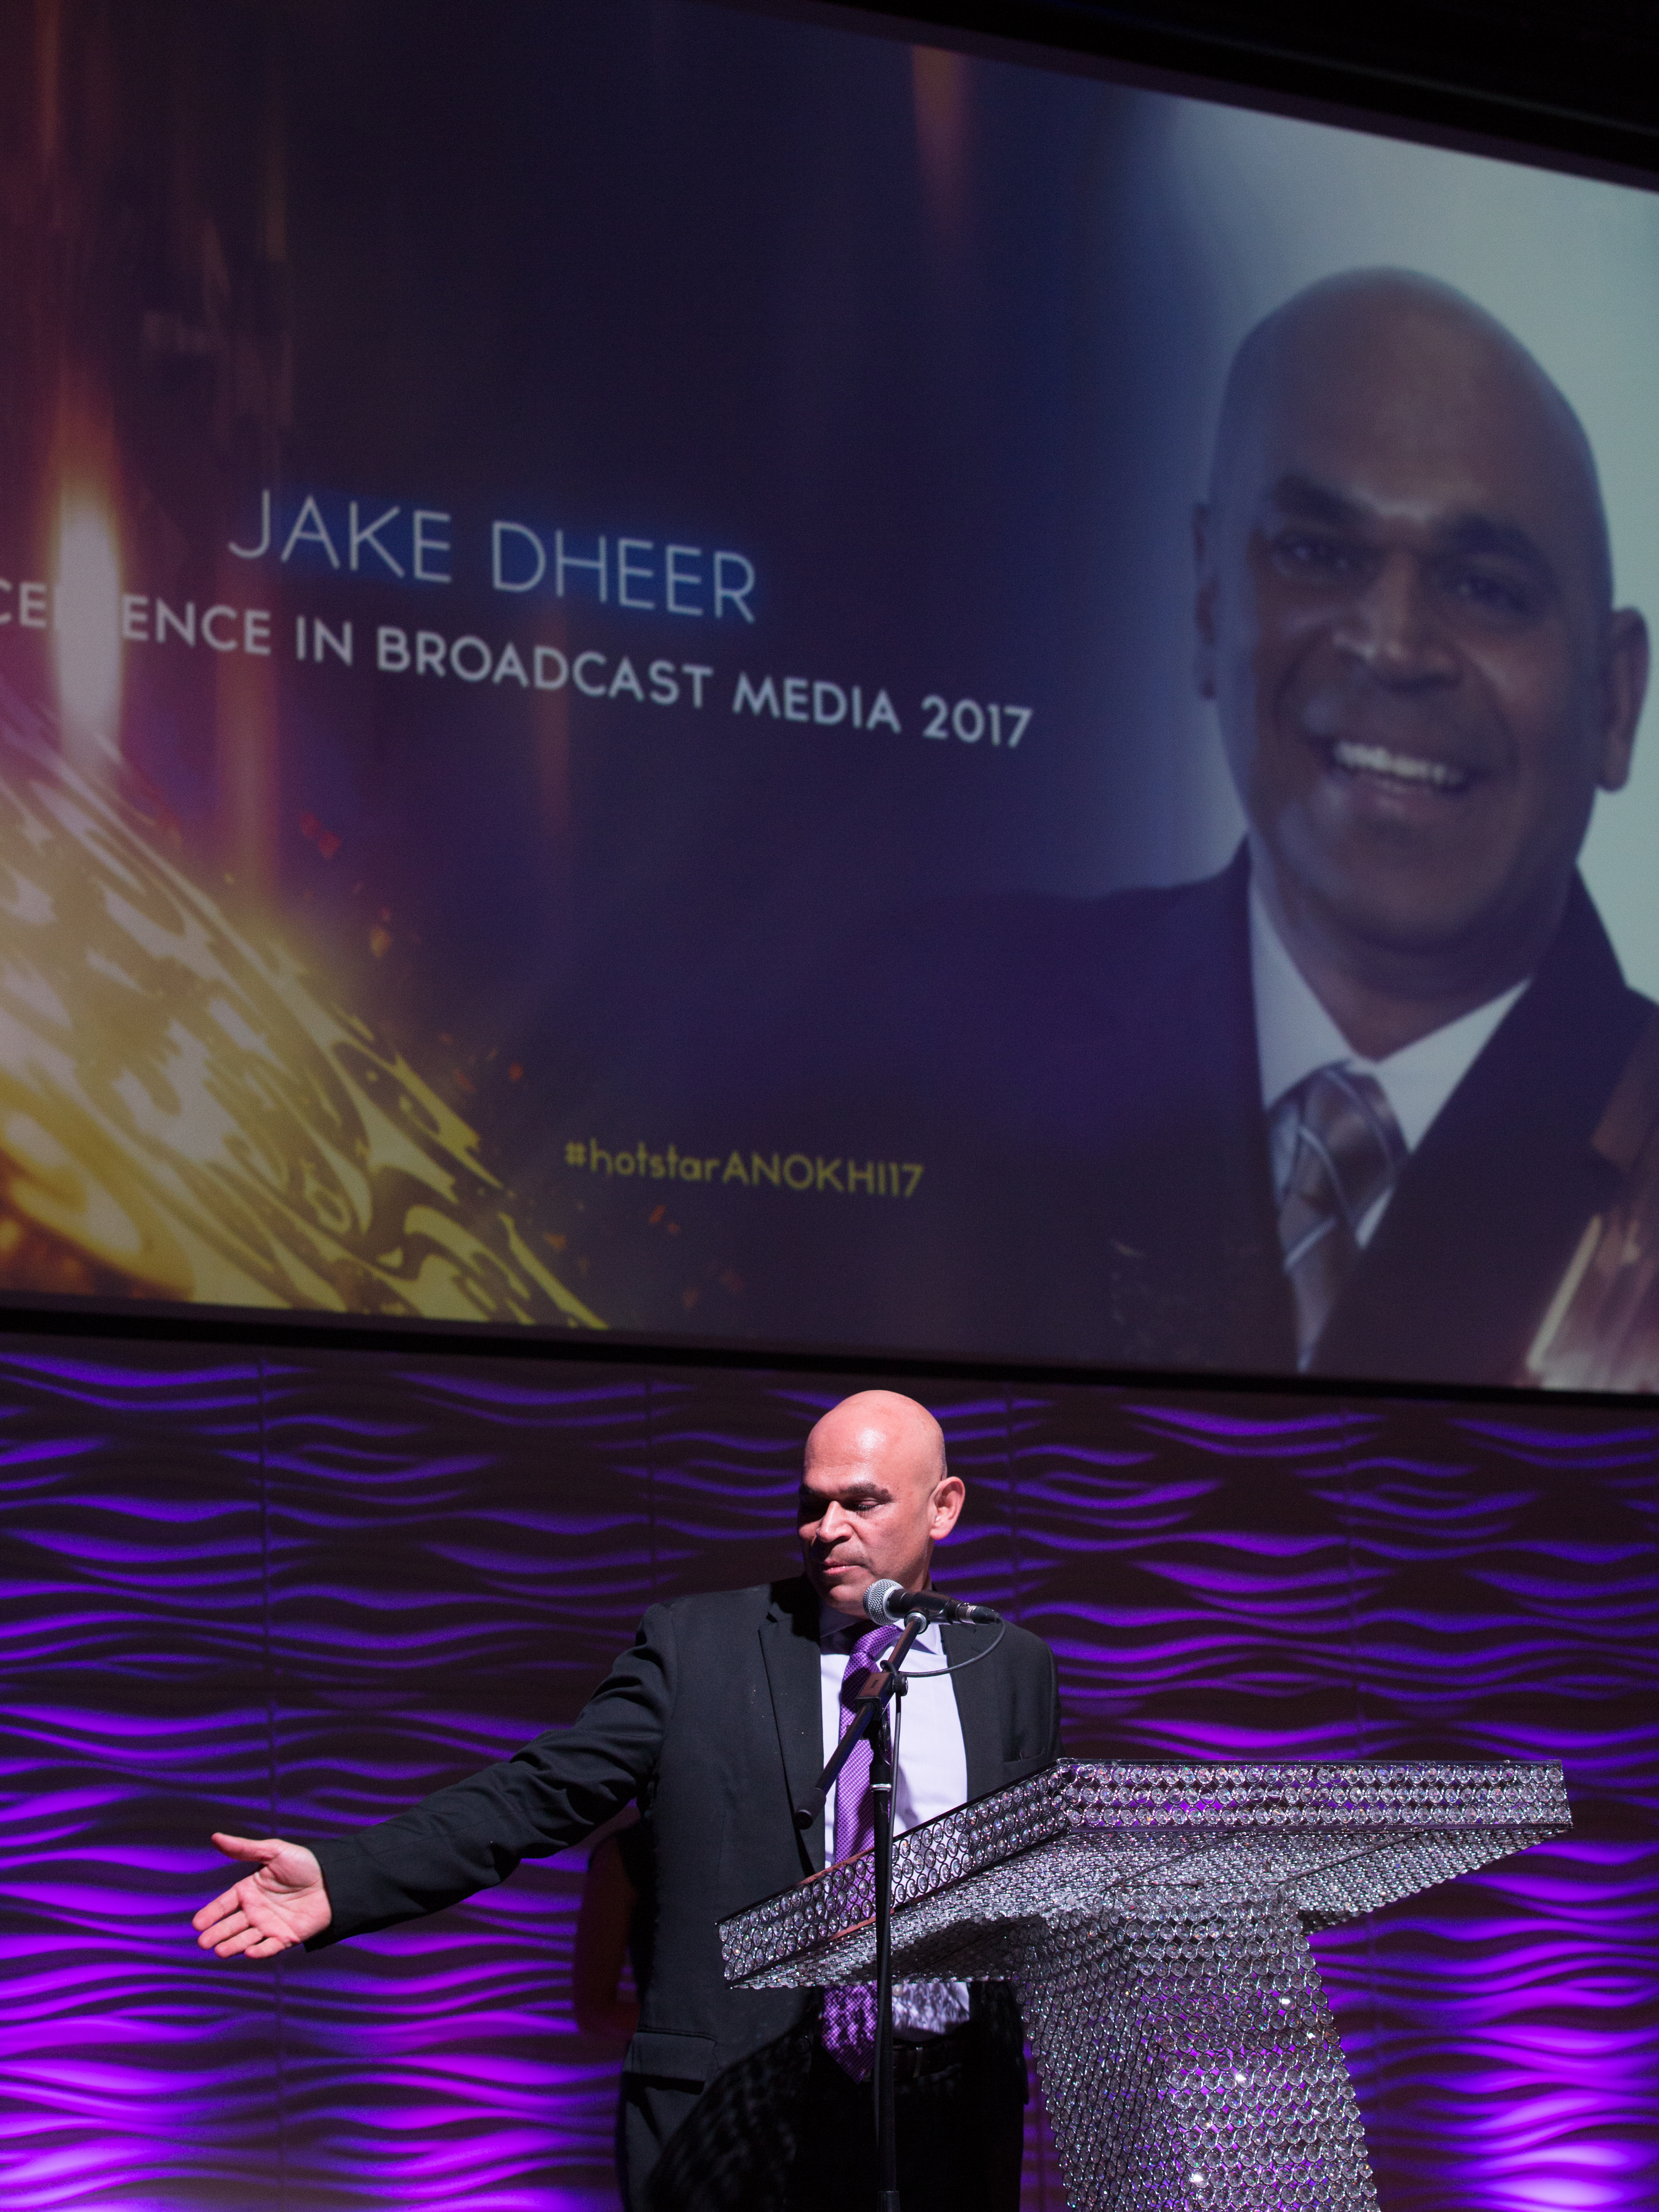 Jake Dheer Wins Excellence In Broadcast Media 2017 Award